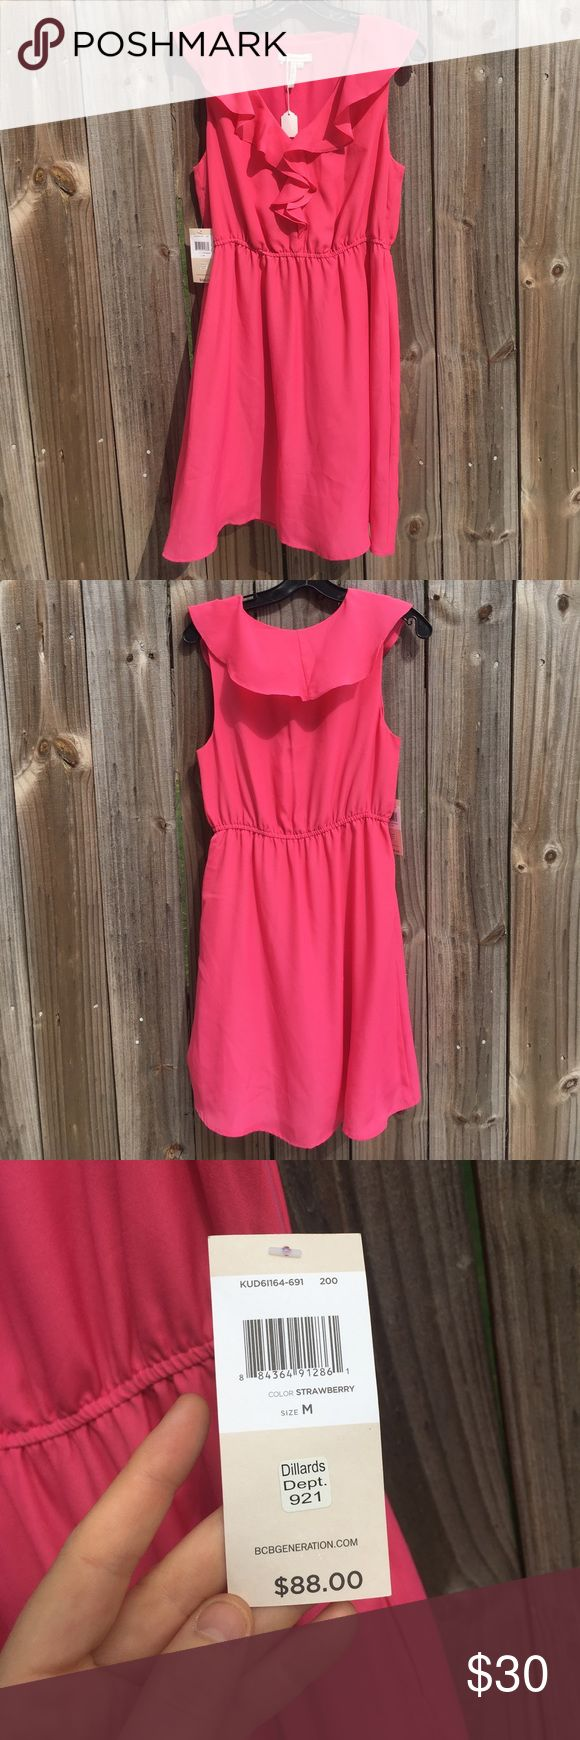 NWT Pink Ruffle BCBGeneration dress Great ruffle dress perfect for dressing up or down! Ruffle front with three clasps for varying necklines. Scrunch waist and pockets! Lined dress. Brand new with tags. BCBGeneration Dresses